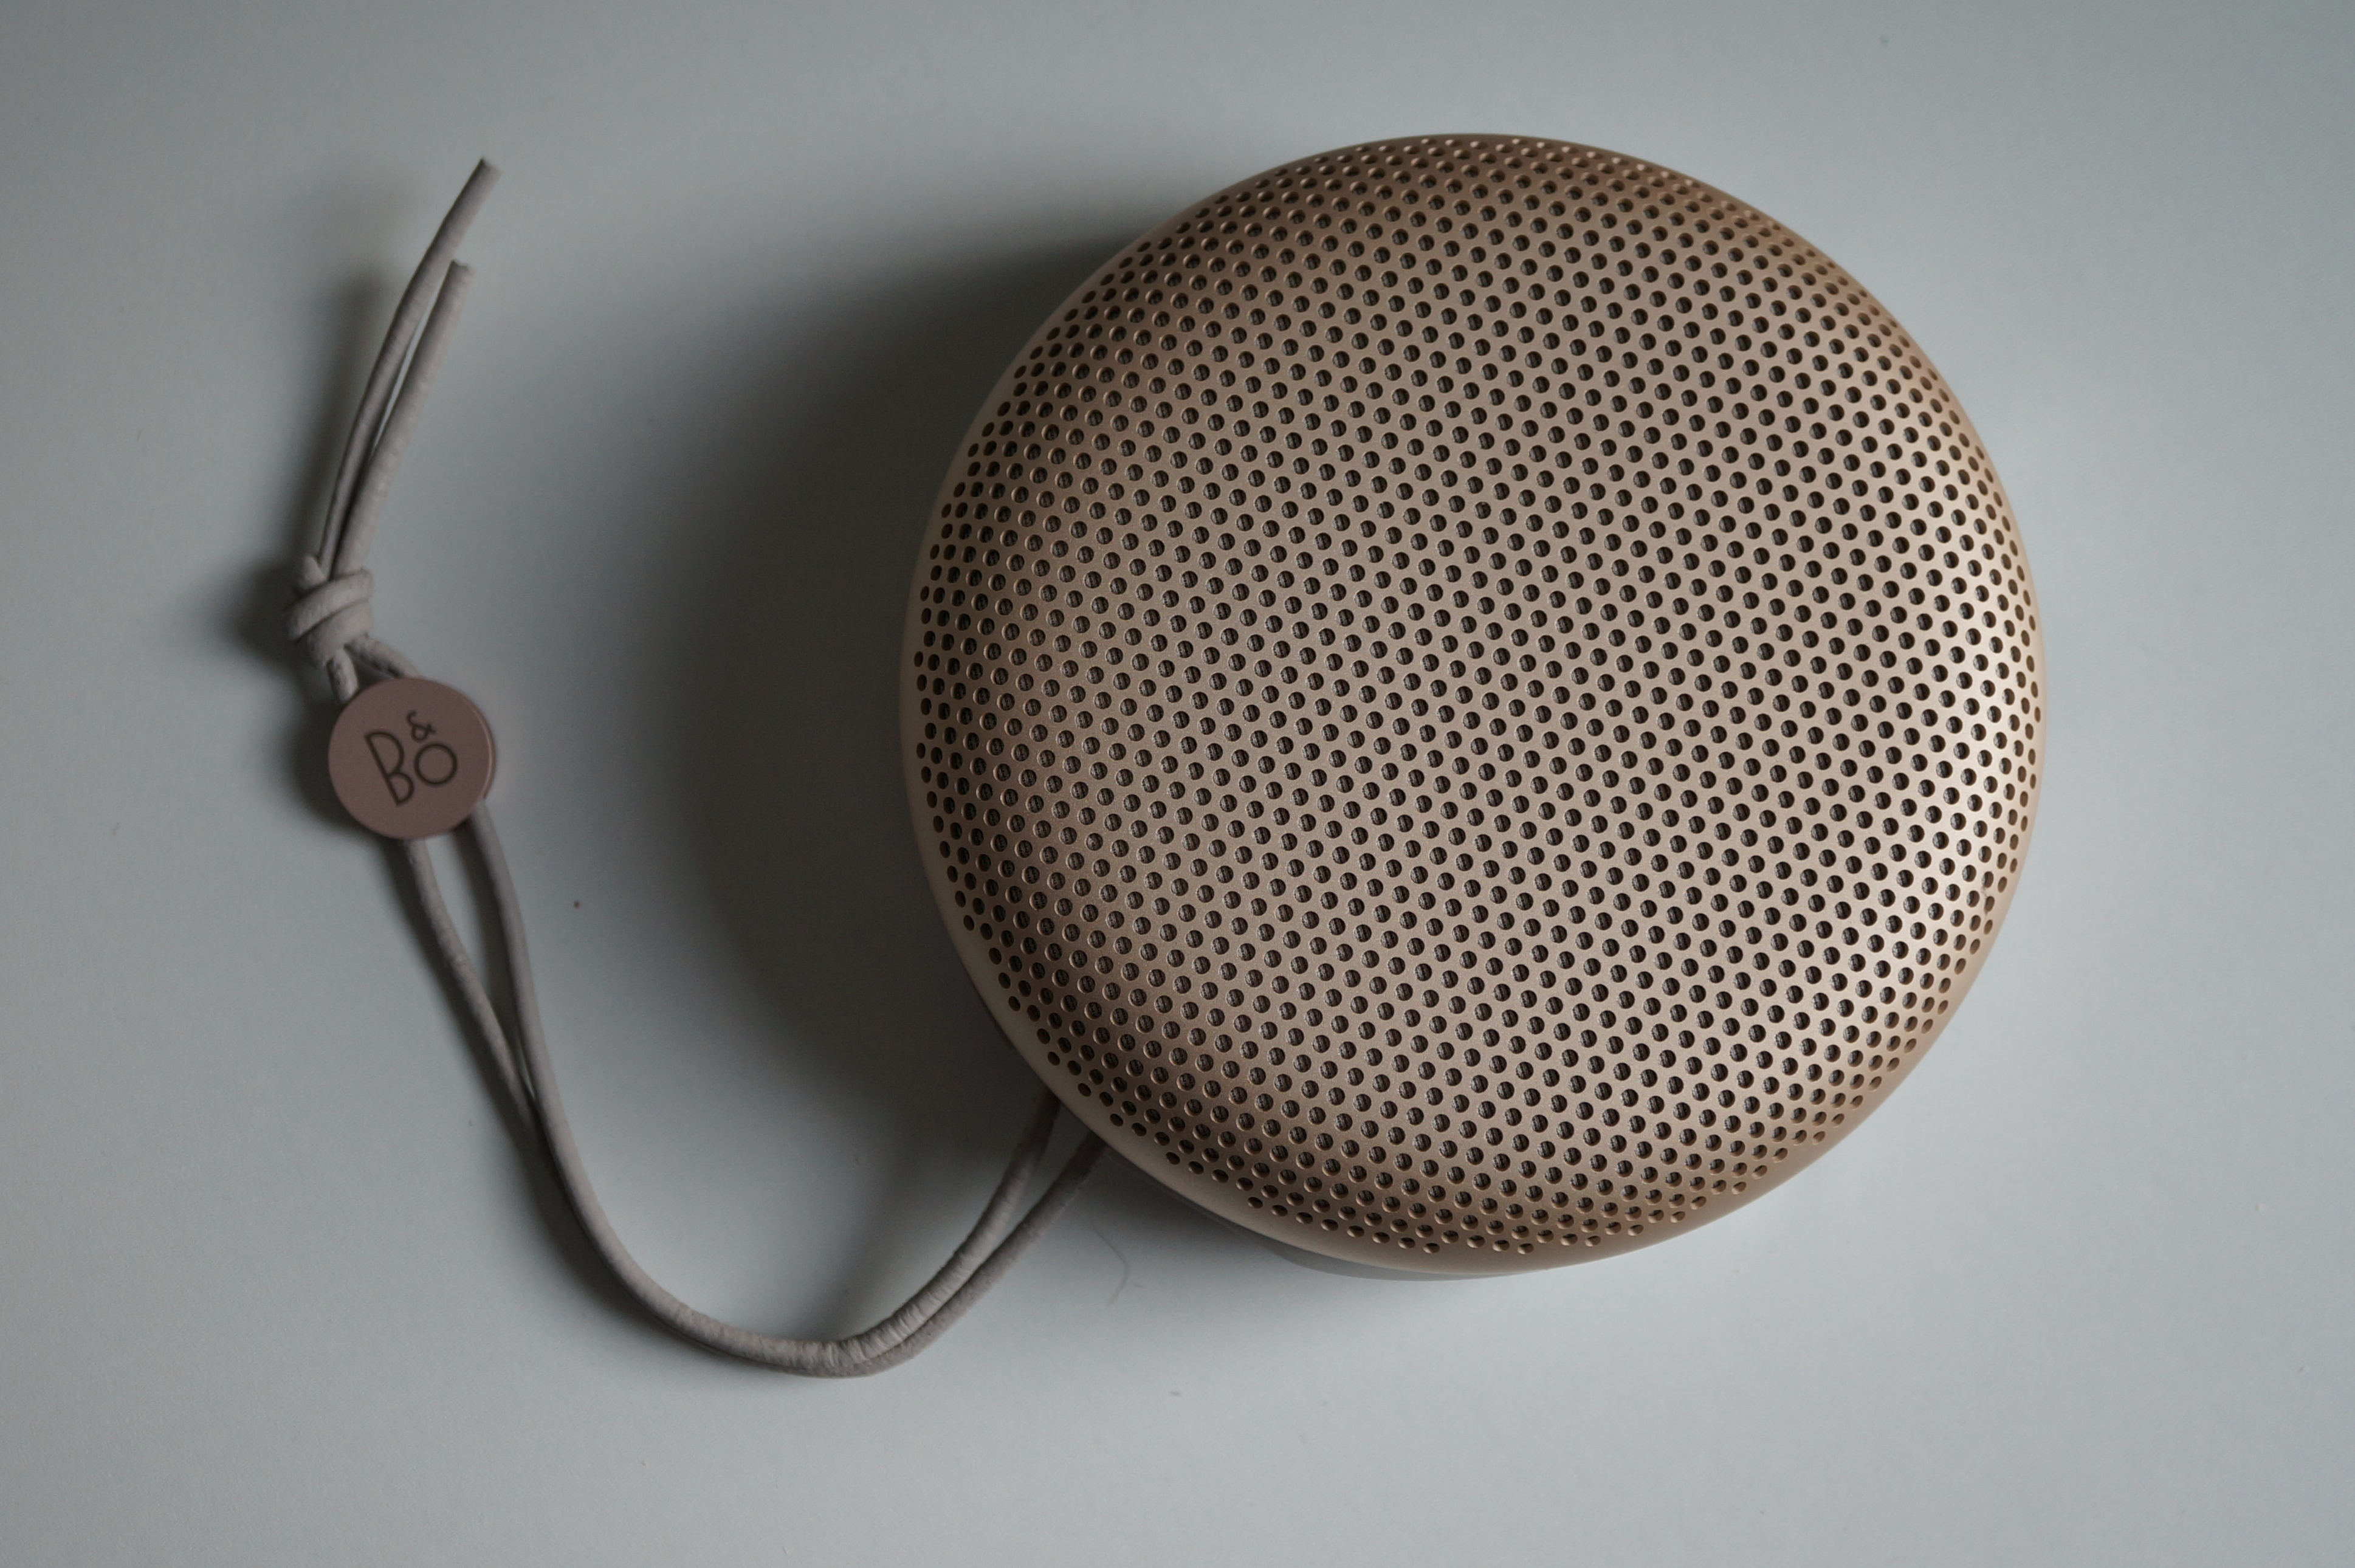 BeoPlay A1 Image